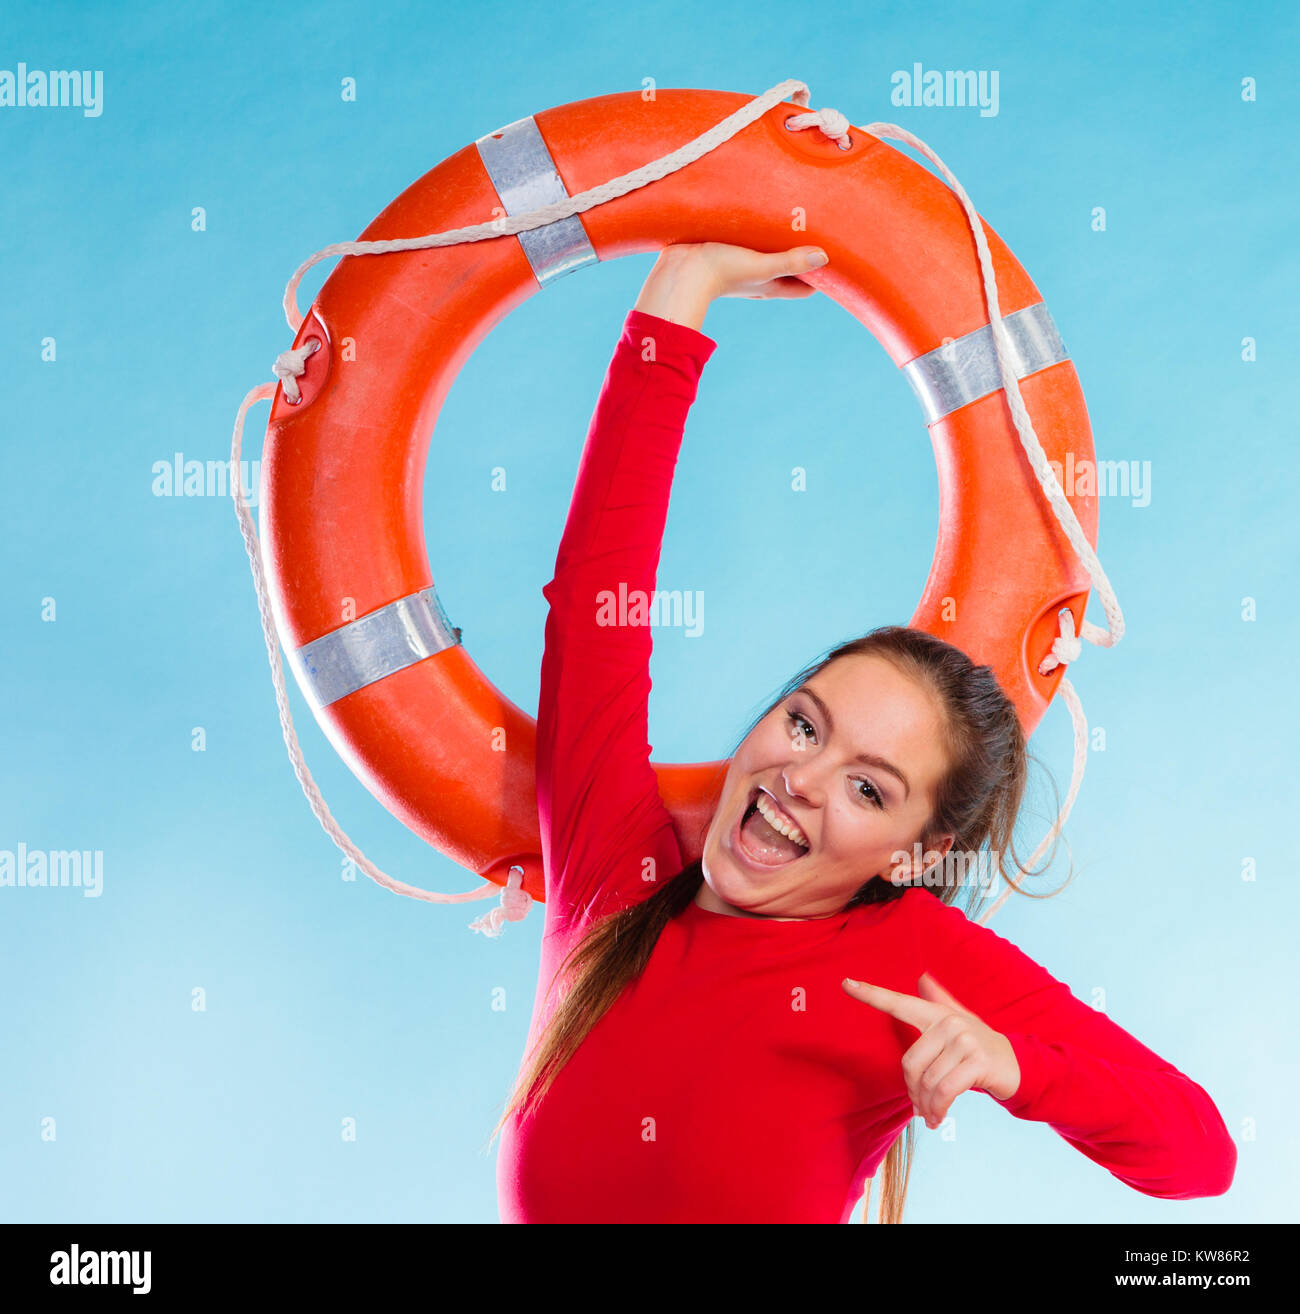 c04f89c1192 Accident prevention and water rescue. Young woman female smiling lifeguard  on duty holding lifesaver equipment having fun on blue